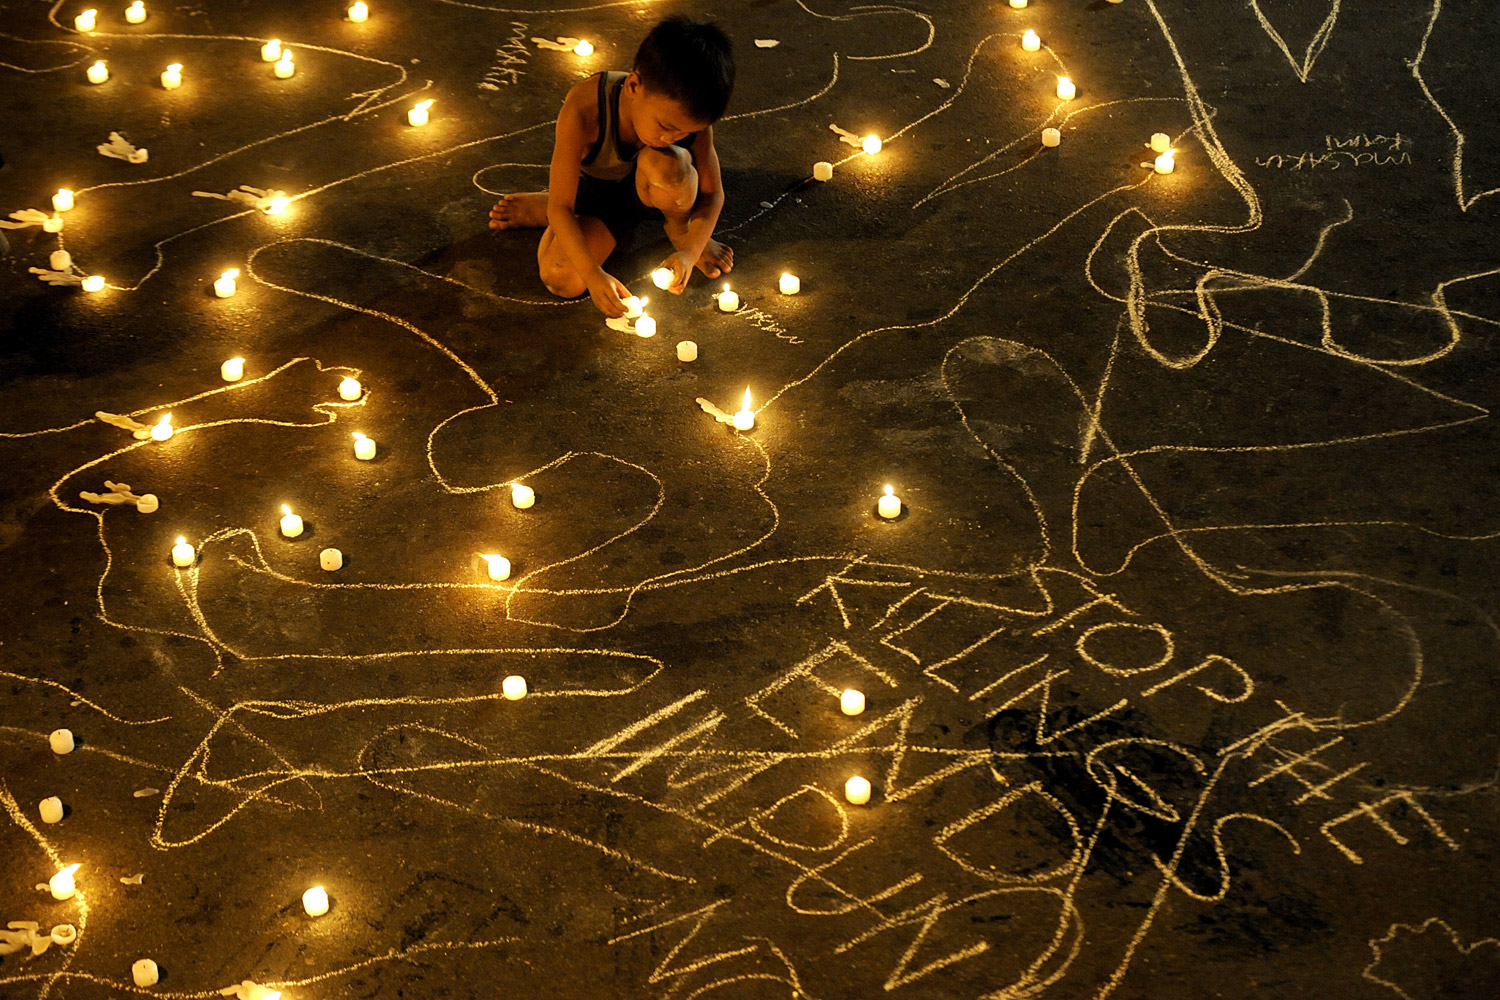 November 23, 2011. A boy lights a candle during a vigil to commemorate the second anniversary of the Maguindanao massacre, near the Malacanang palace in Manila. Relatives of 57 people killed in the Philippines' worst political massacre called on authorities to speed up the suspects' trial as they marked the second anniversary of the murders.